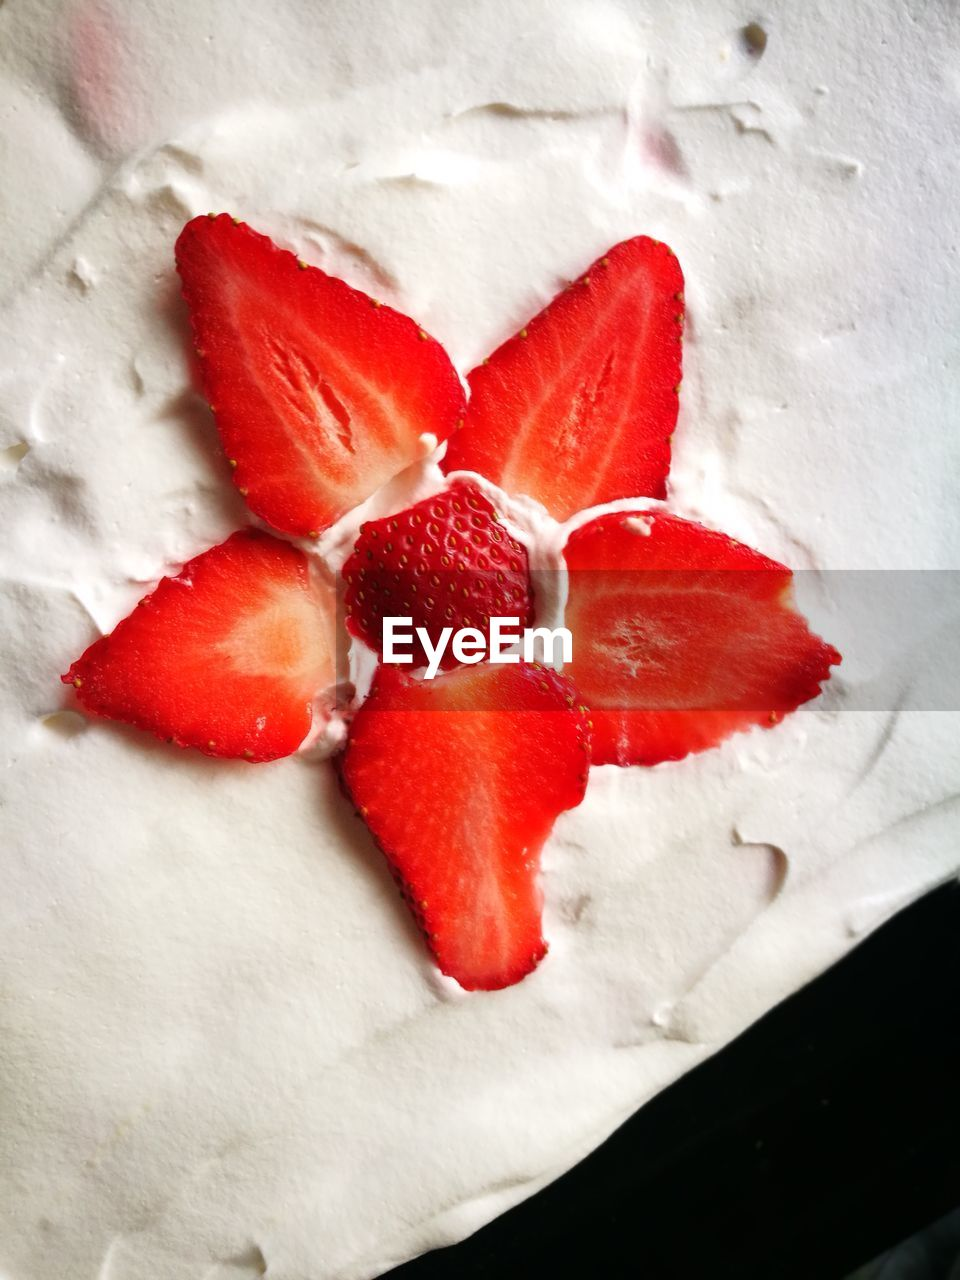 red, food and drink, strawberry, freshness, fruit, food, still life, sweet food, close-up, indoors, no people, indulgence, high angle view, healthy eating, slice, dessert, ready-to-eat, day